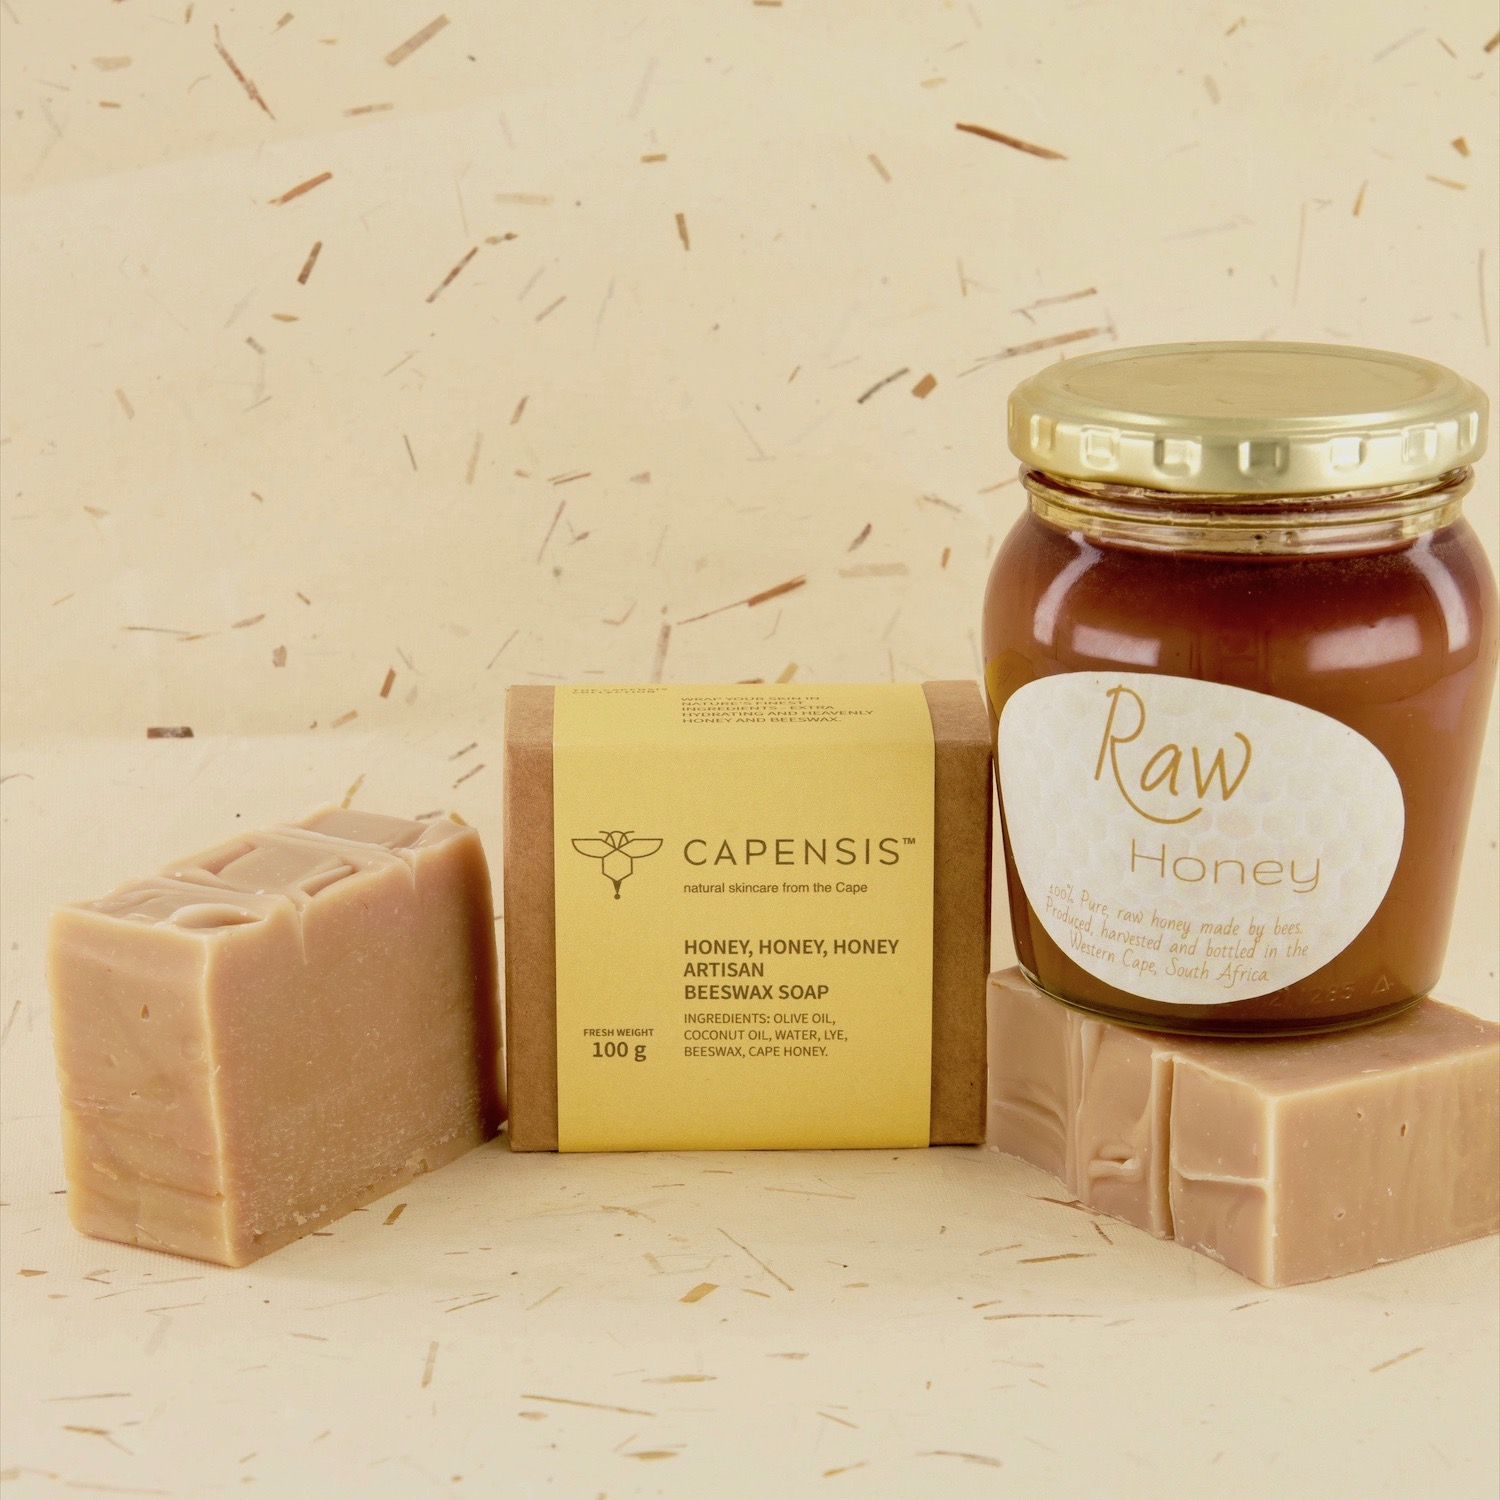 Beeswax & Honey to wrap your skin in nature's finest ingredients. Extra hydrating & heavenly. 